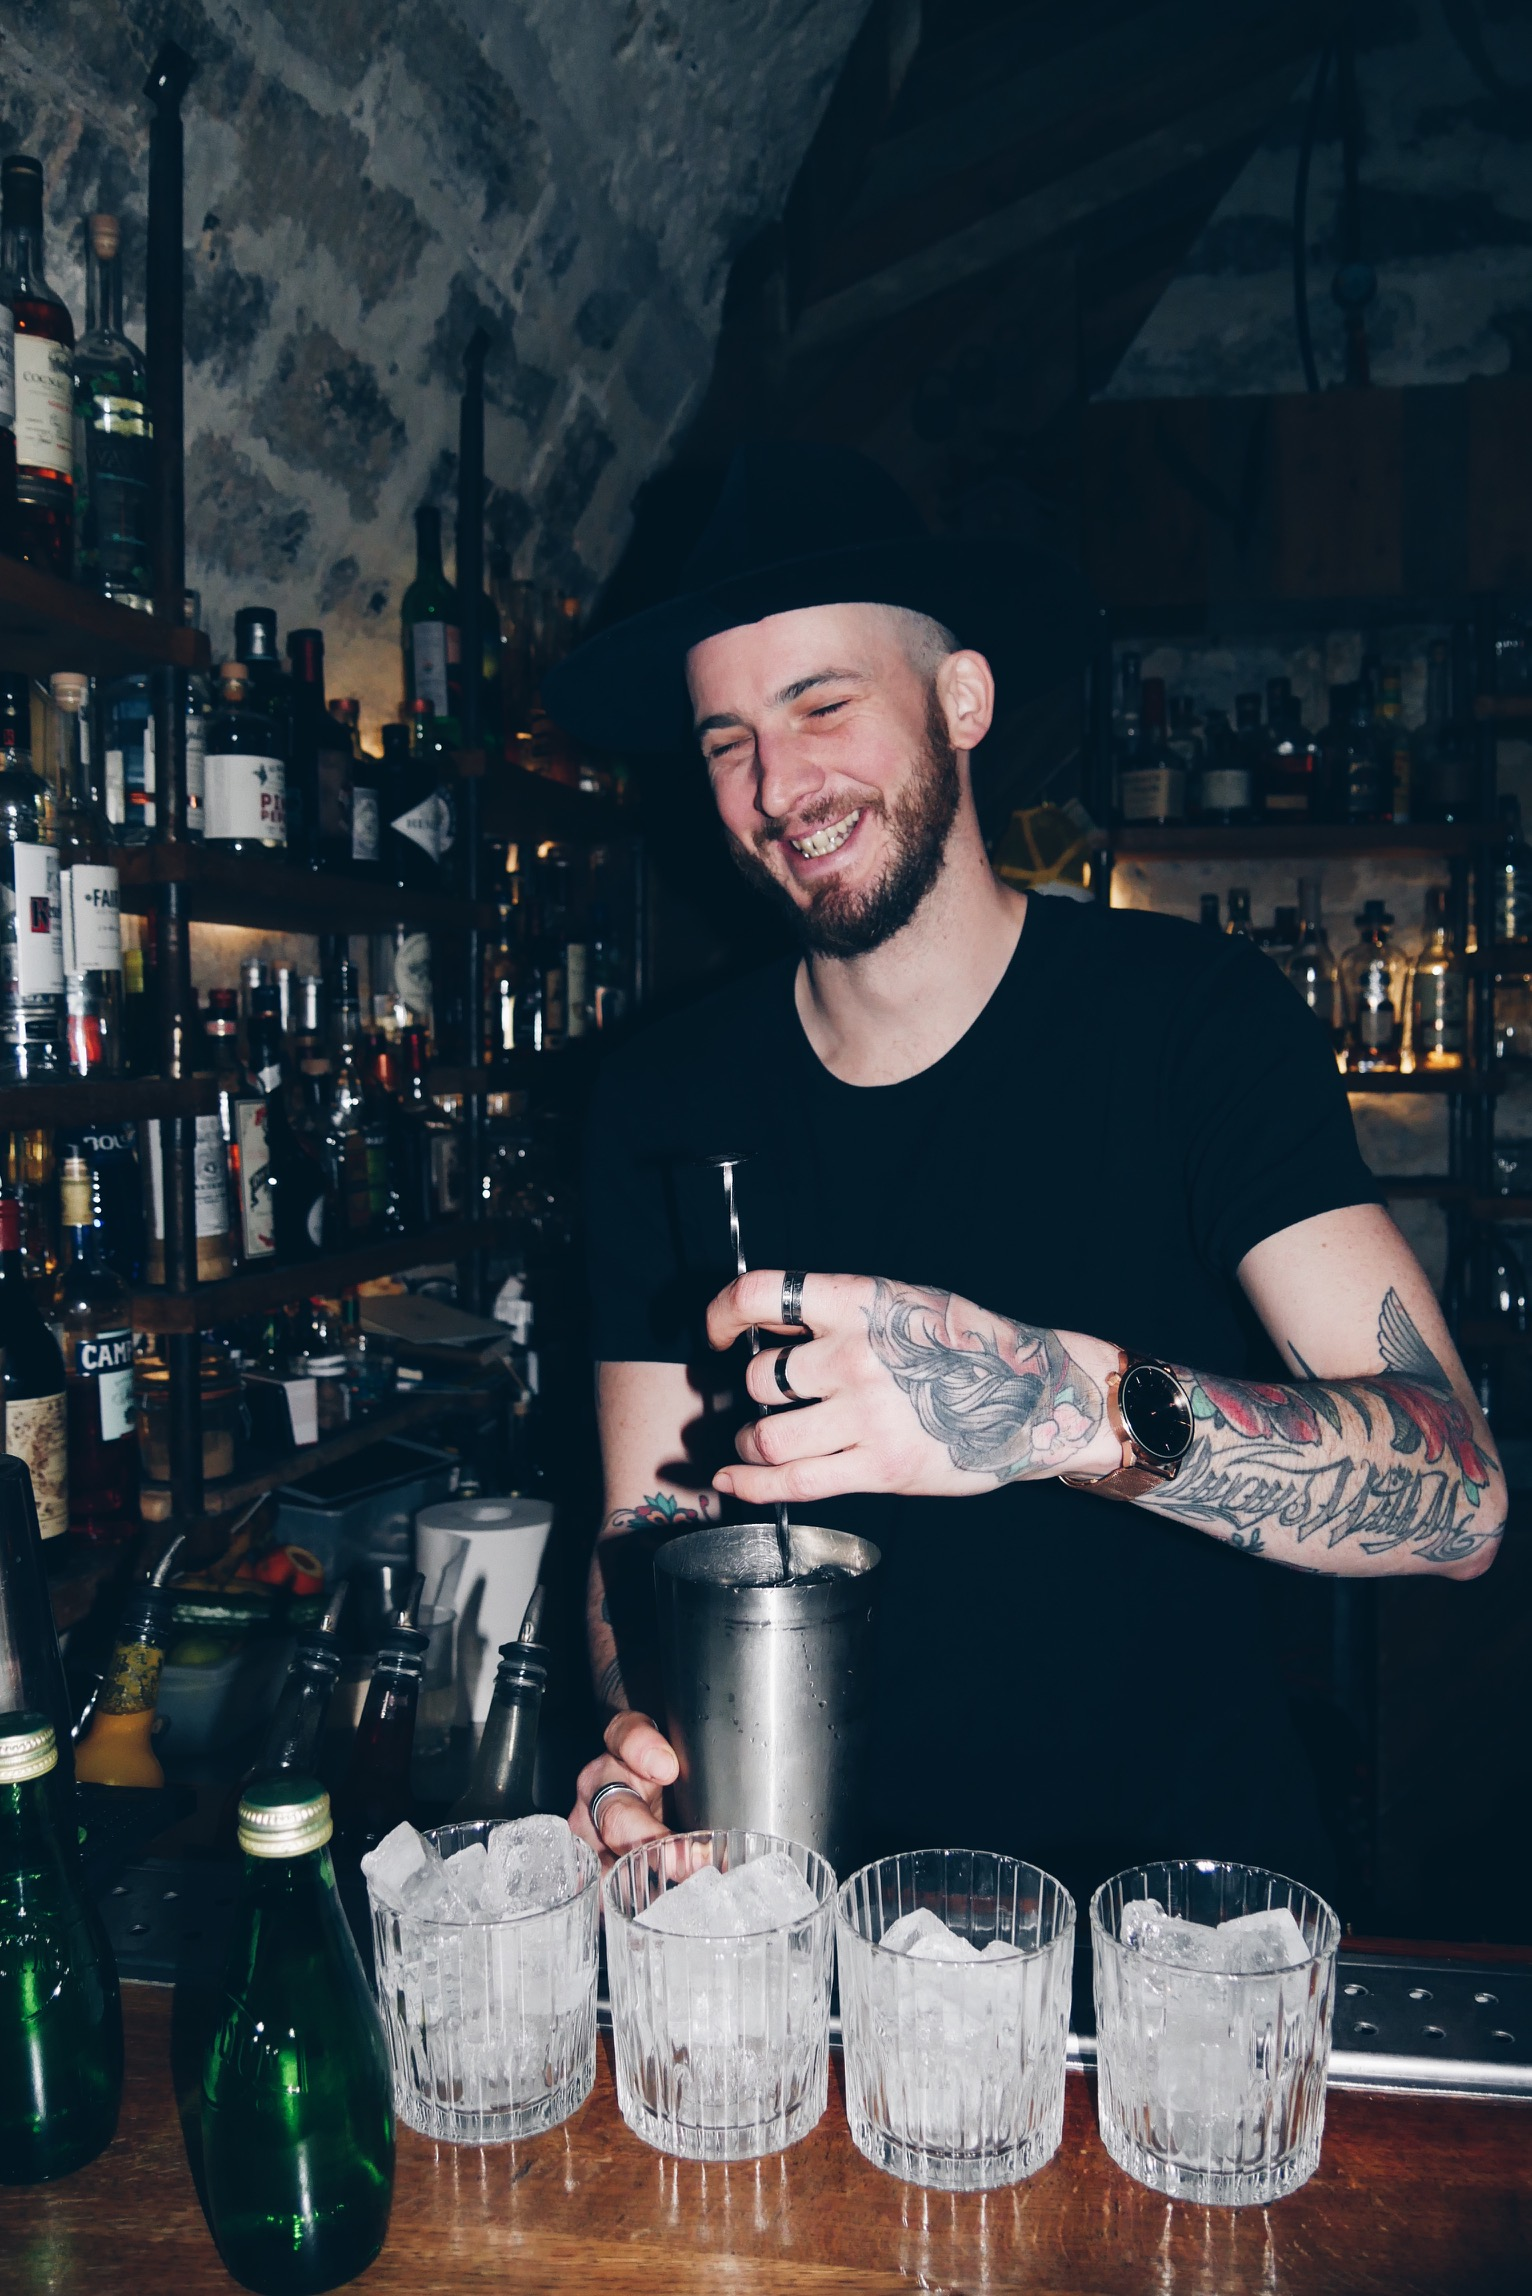 Bar-Lockwood-Paris-Mathieu-barman-charming-man-paris-cocktail-week-photo-usofparis